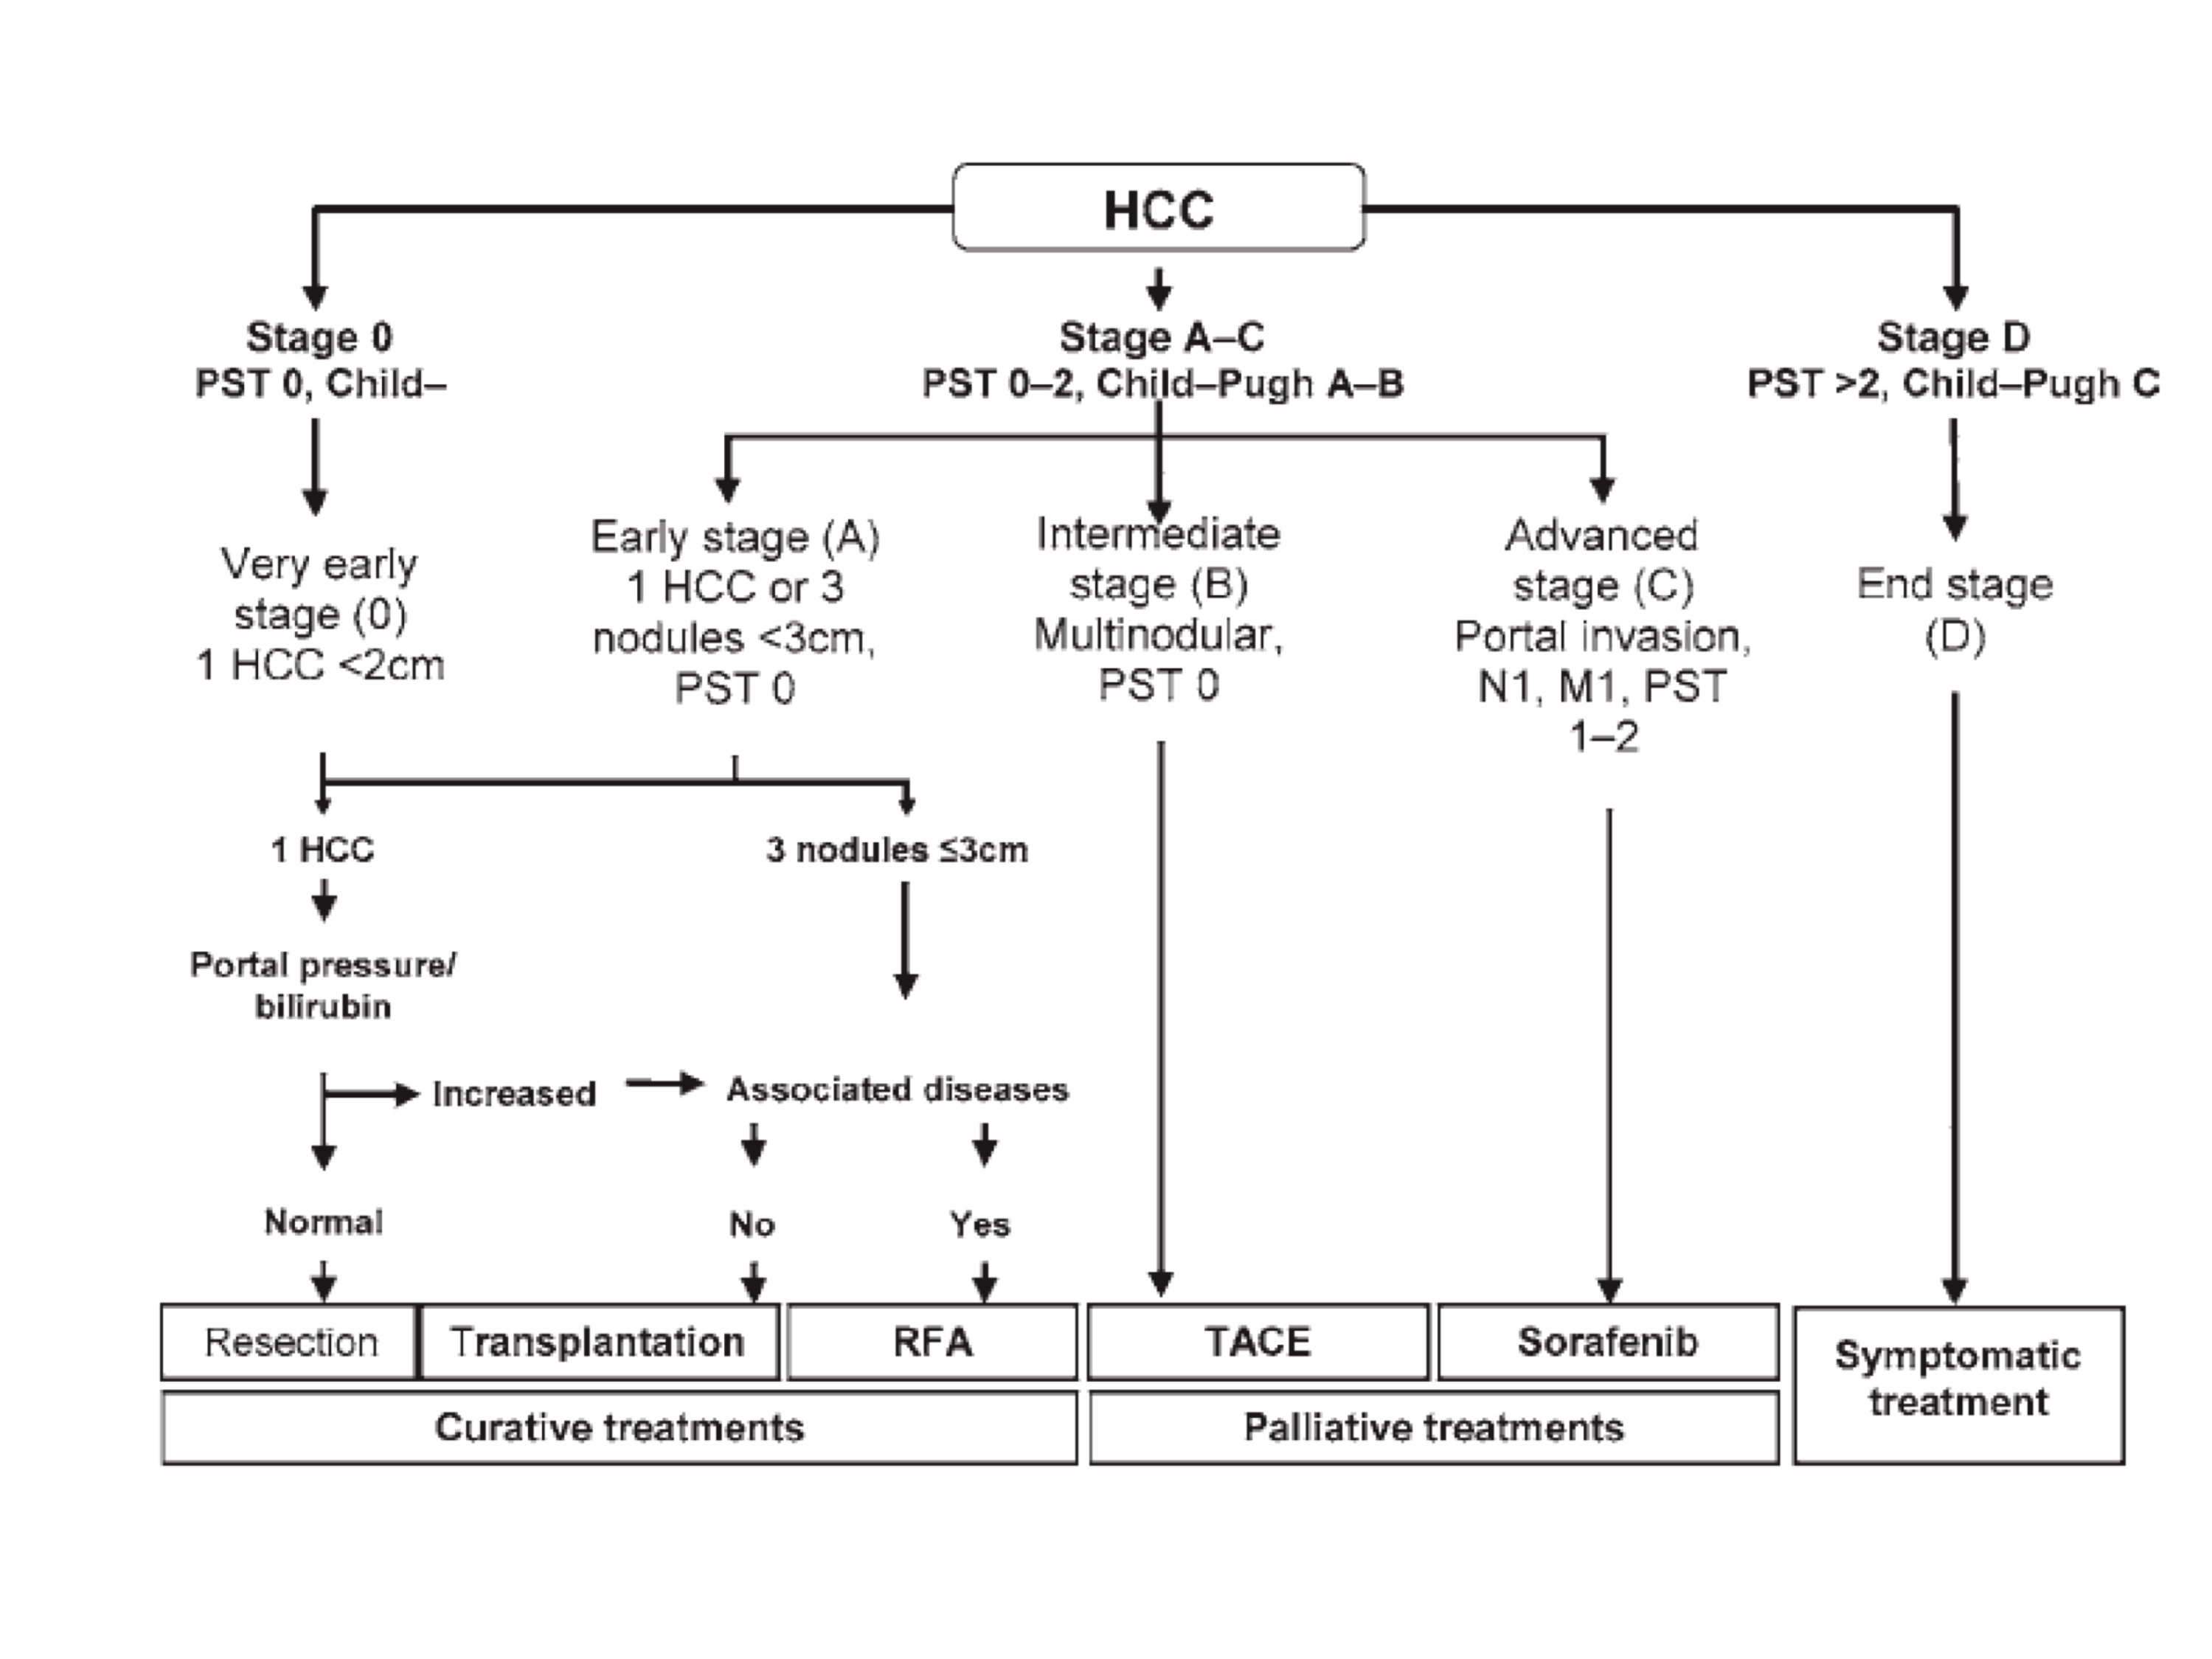 hepatocellular cancer treatment guidelines)